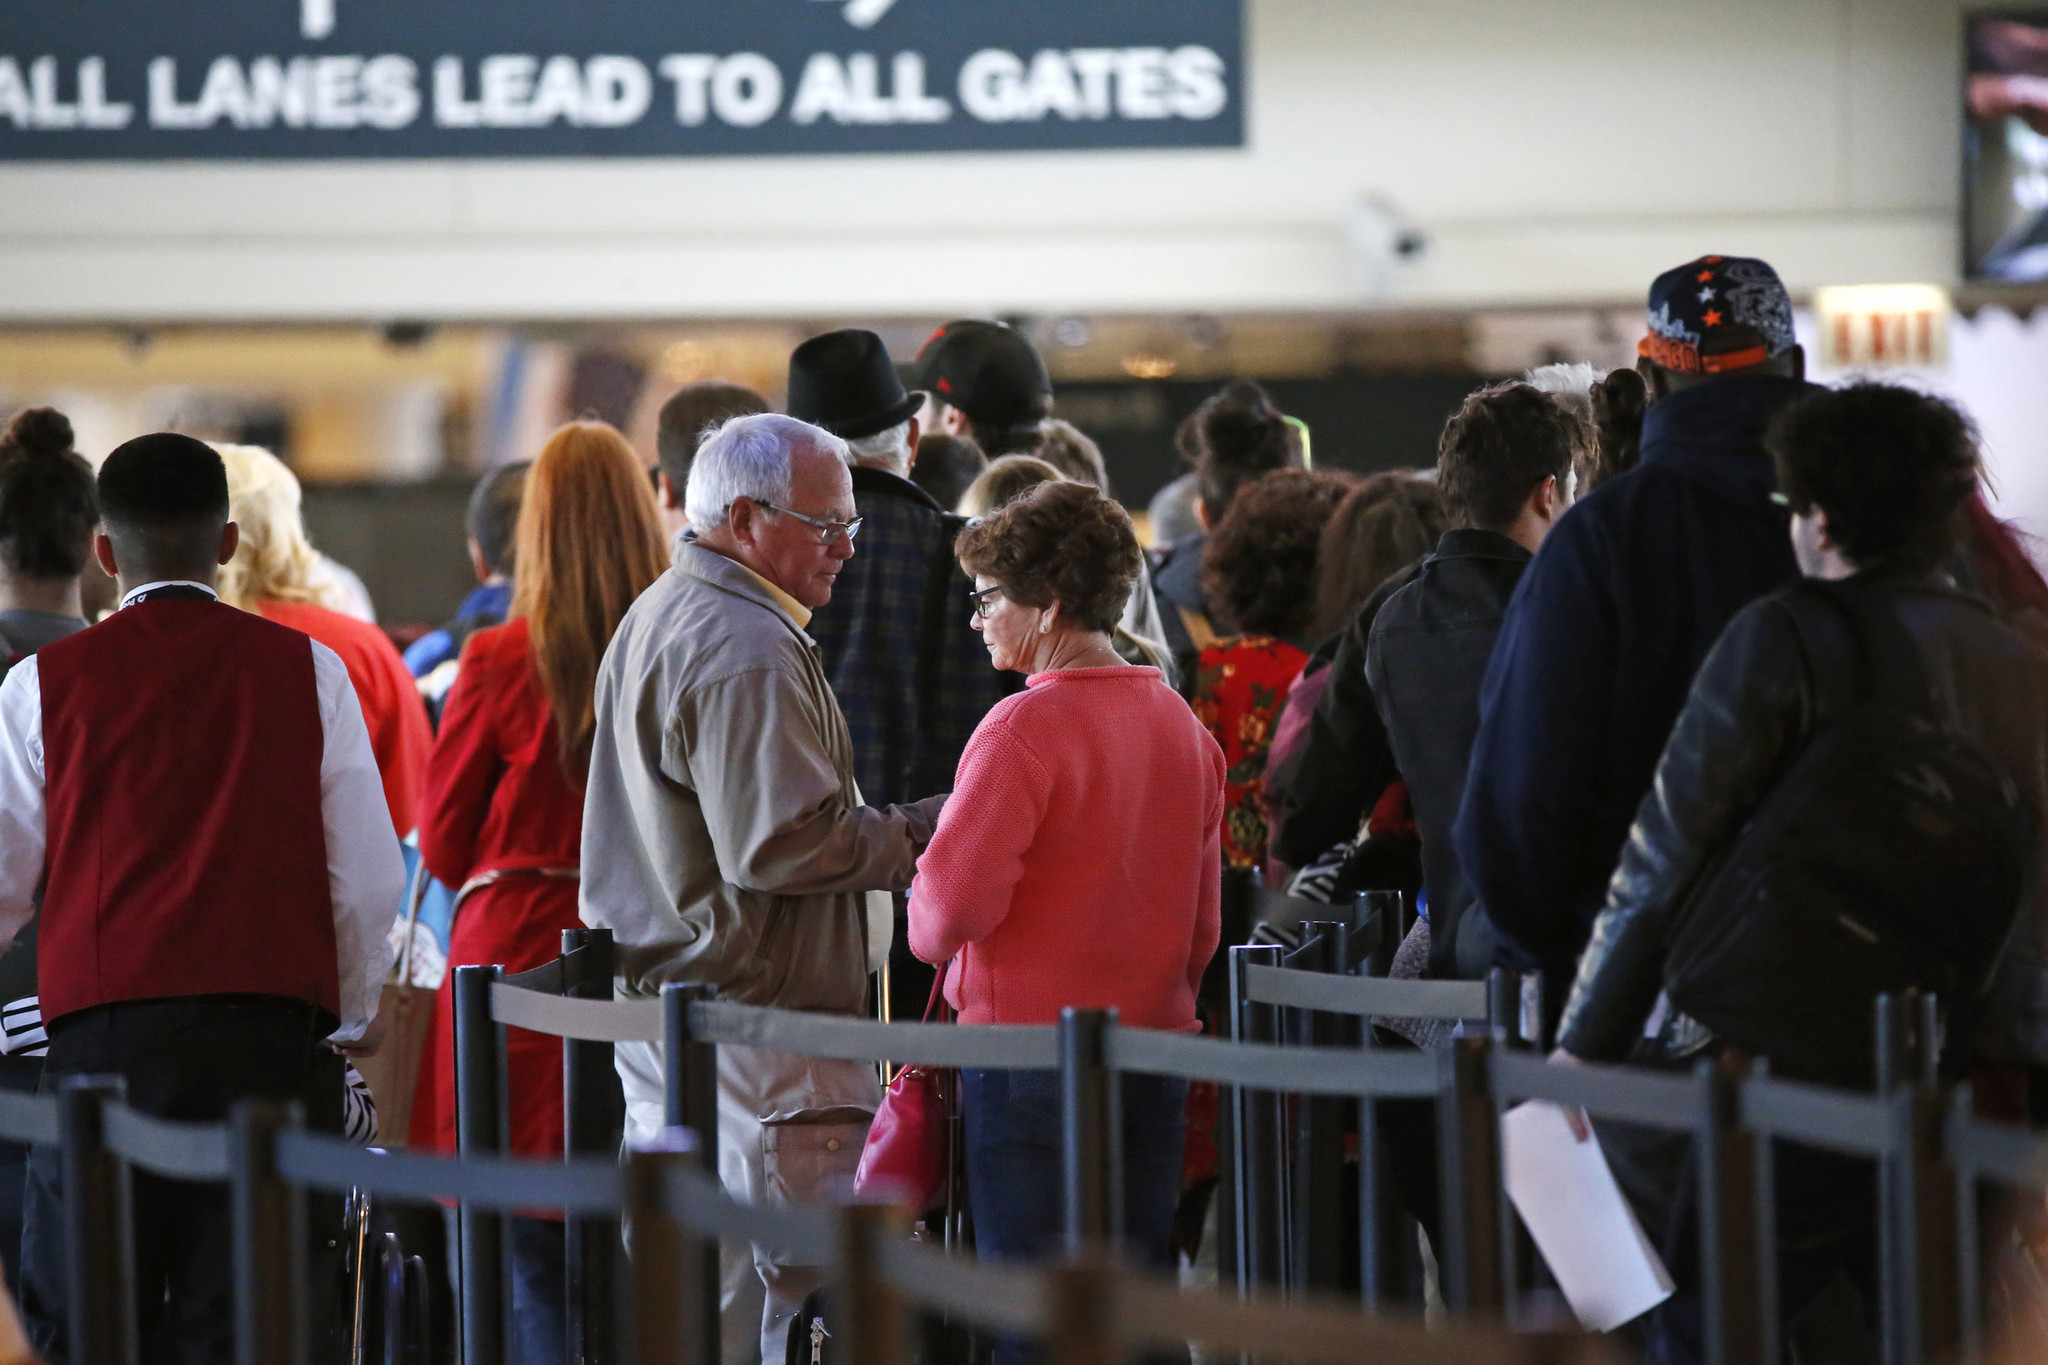 tsa boss in chicago: summer travel will be a 'challenge' despite more staff